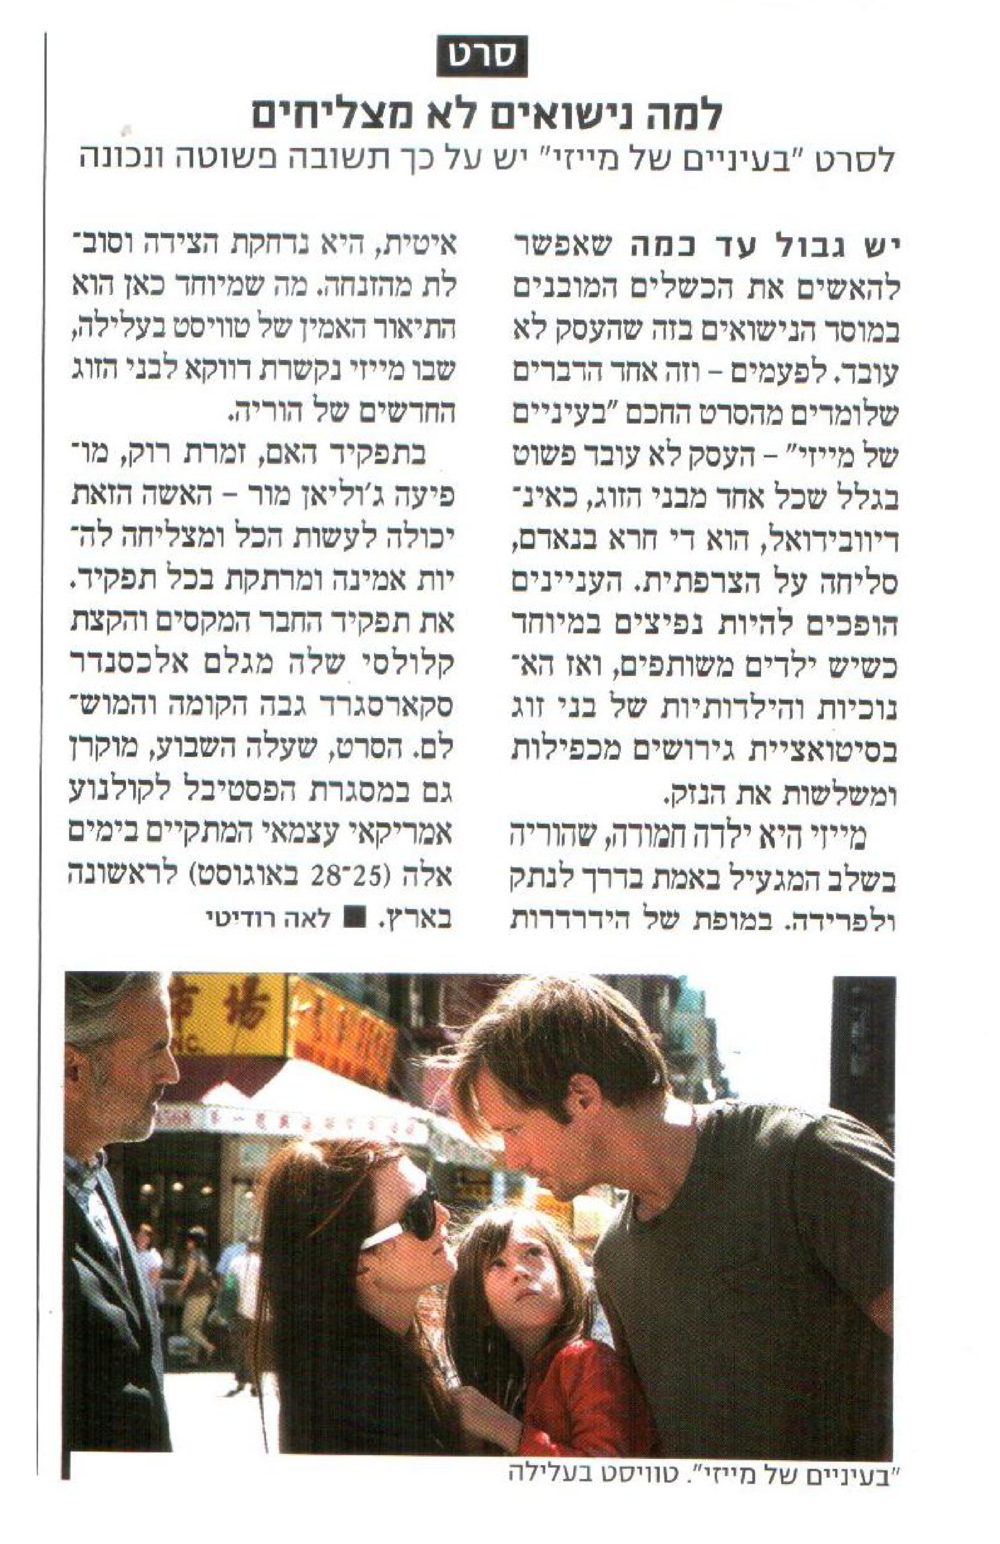 At Magazine 8-23-13-page1.png